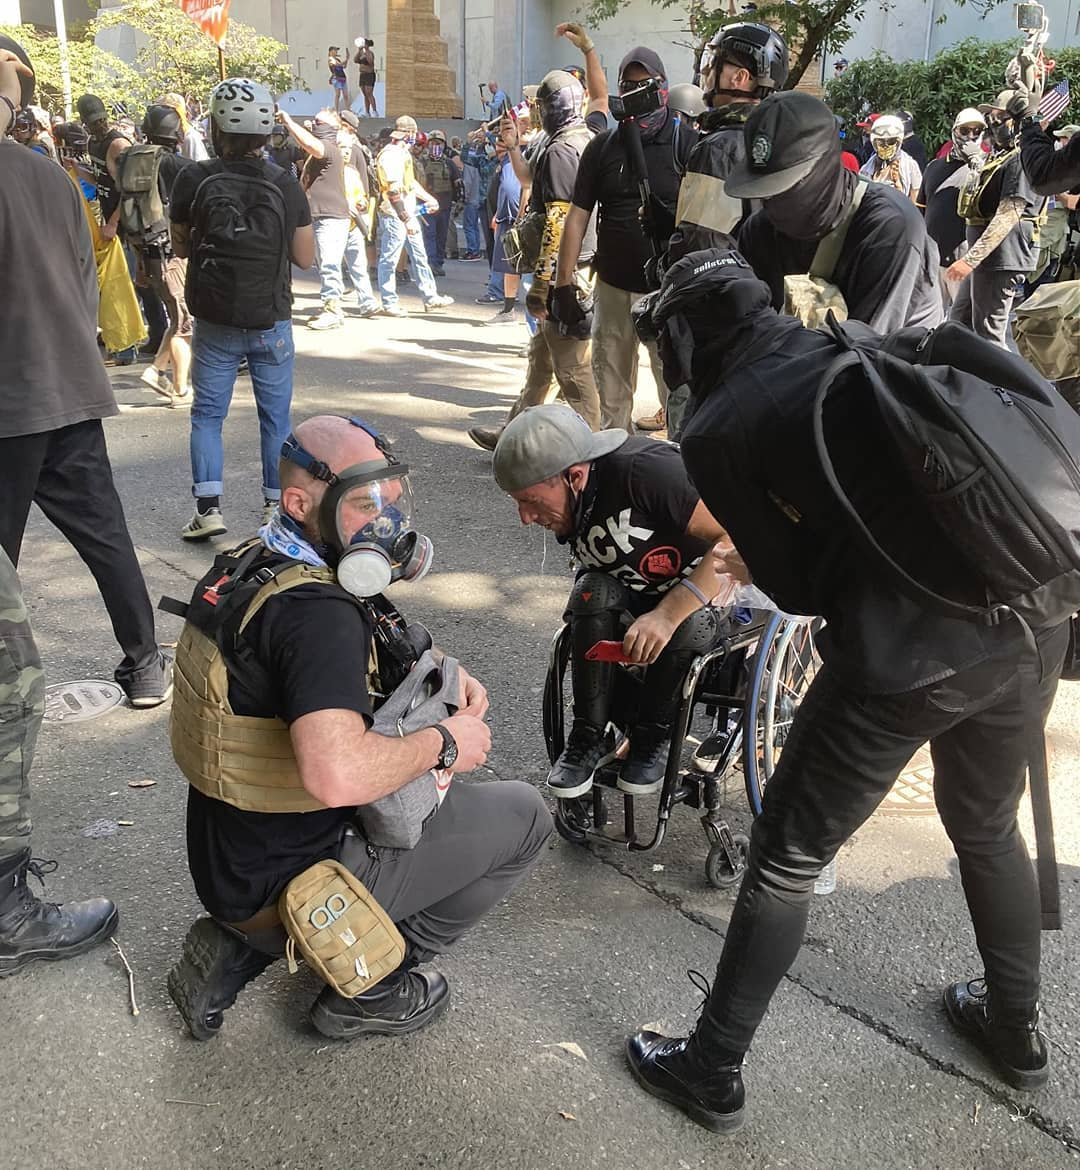 08:22:2020 Portland OR BLM protester maced by proud boys